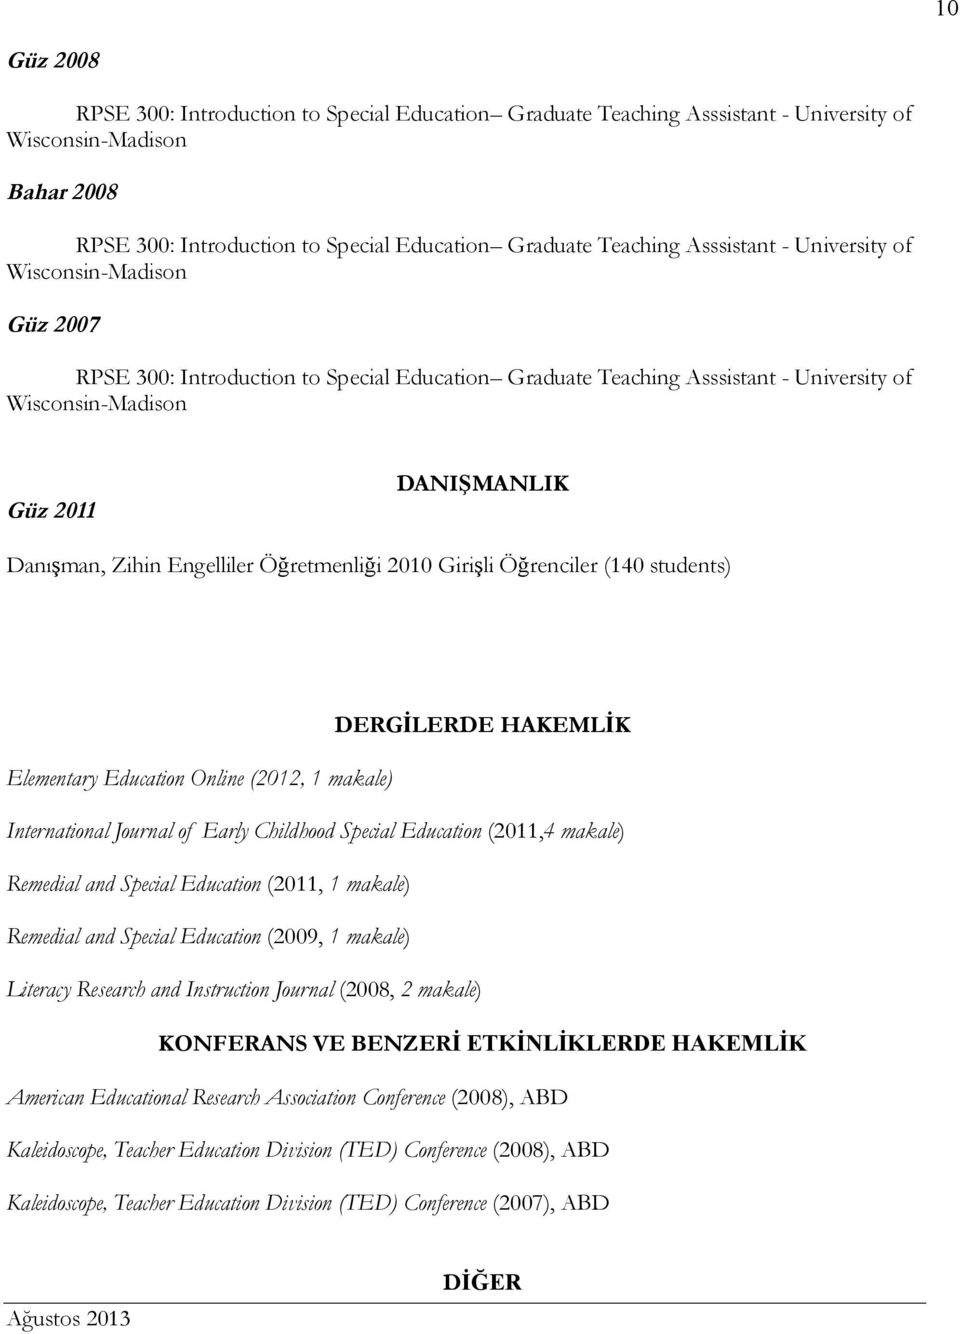 Engelliler Öğretmenliği 2010 Girişli Öğrenciler (140 students) DERGİLERDE HAKEMLİK Elementary Education Online (2012, 1 makale) International Journal of Early Childhood Special Education (2011,4